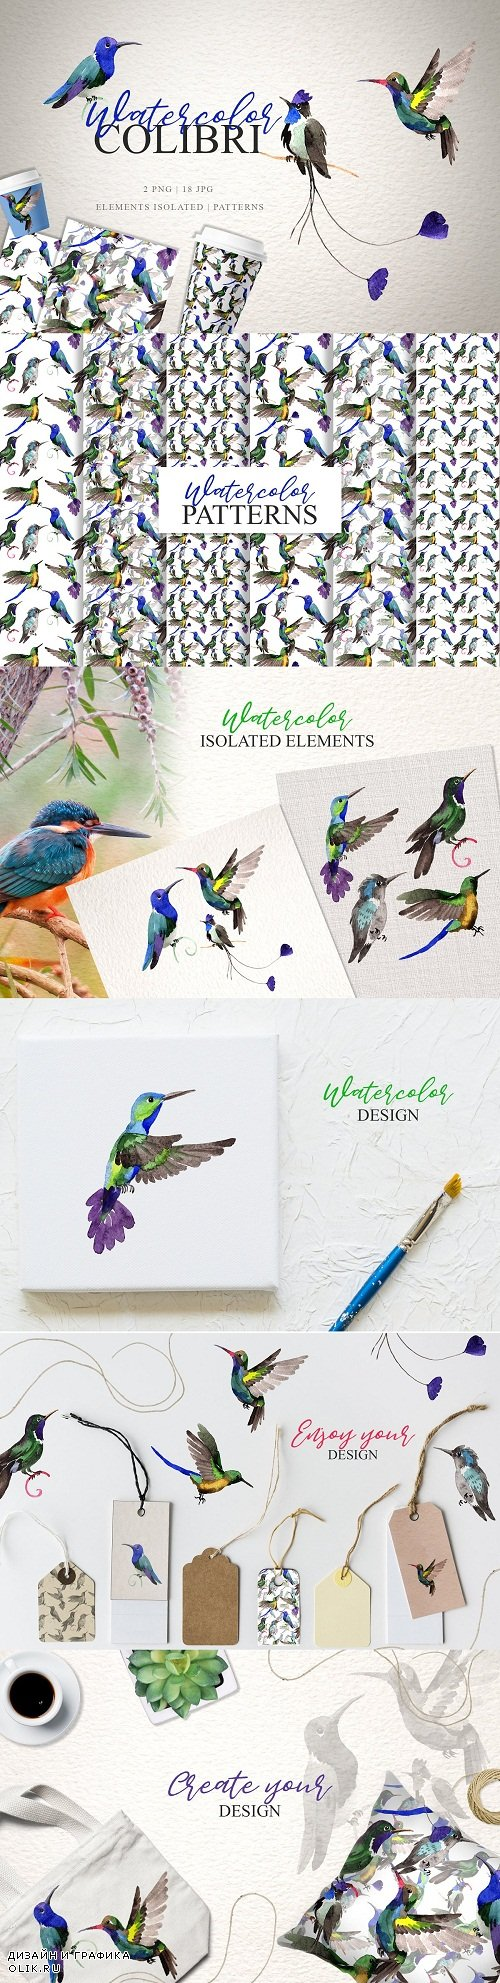 Colibri Watercolor png - 3370170